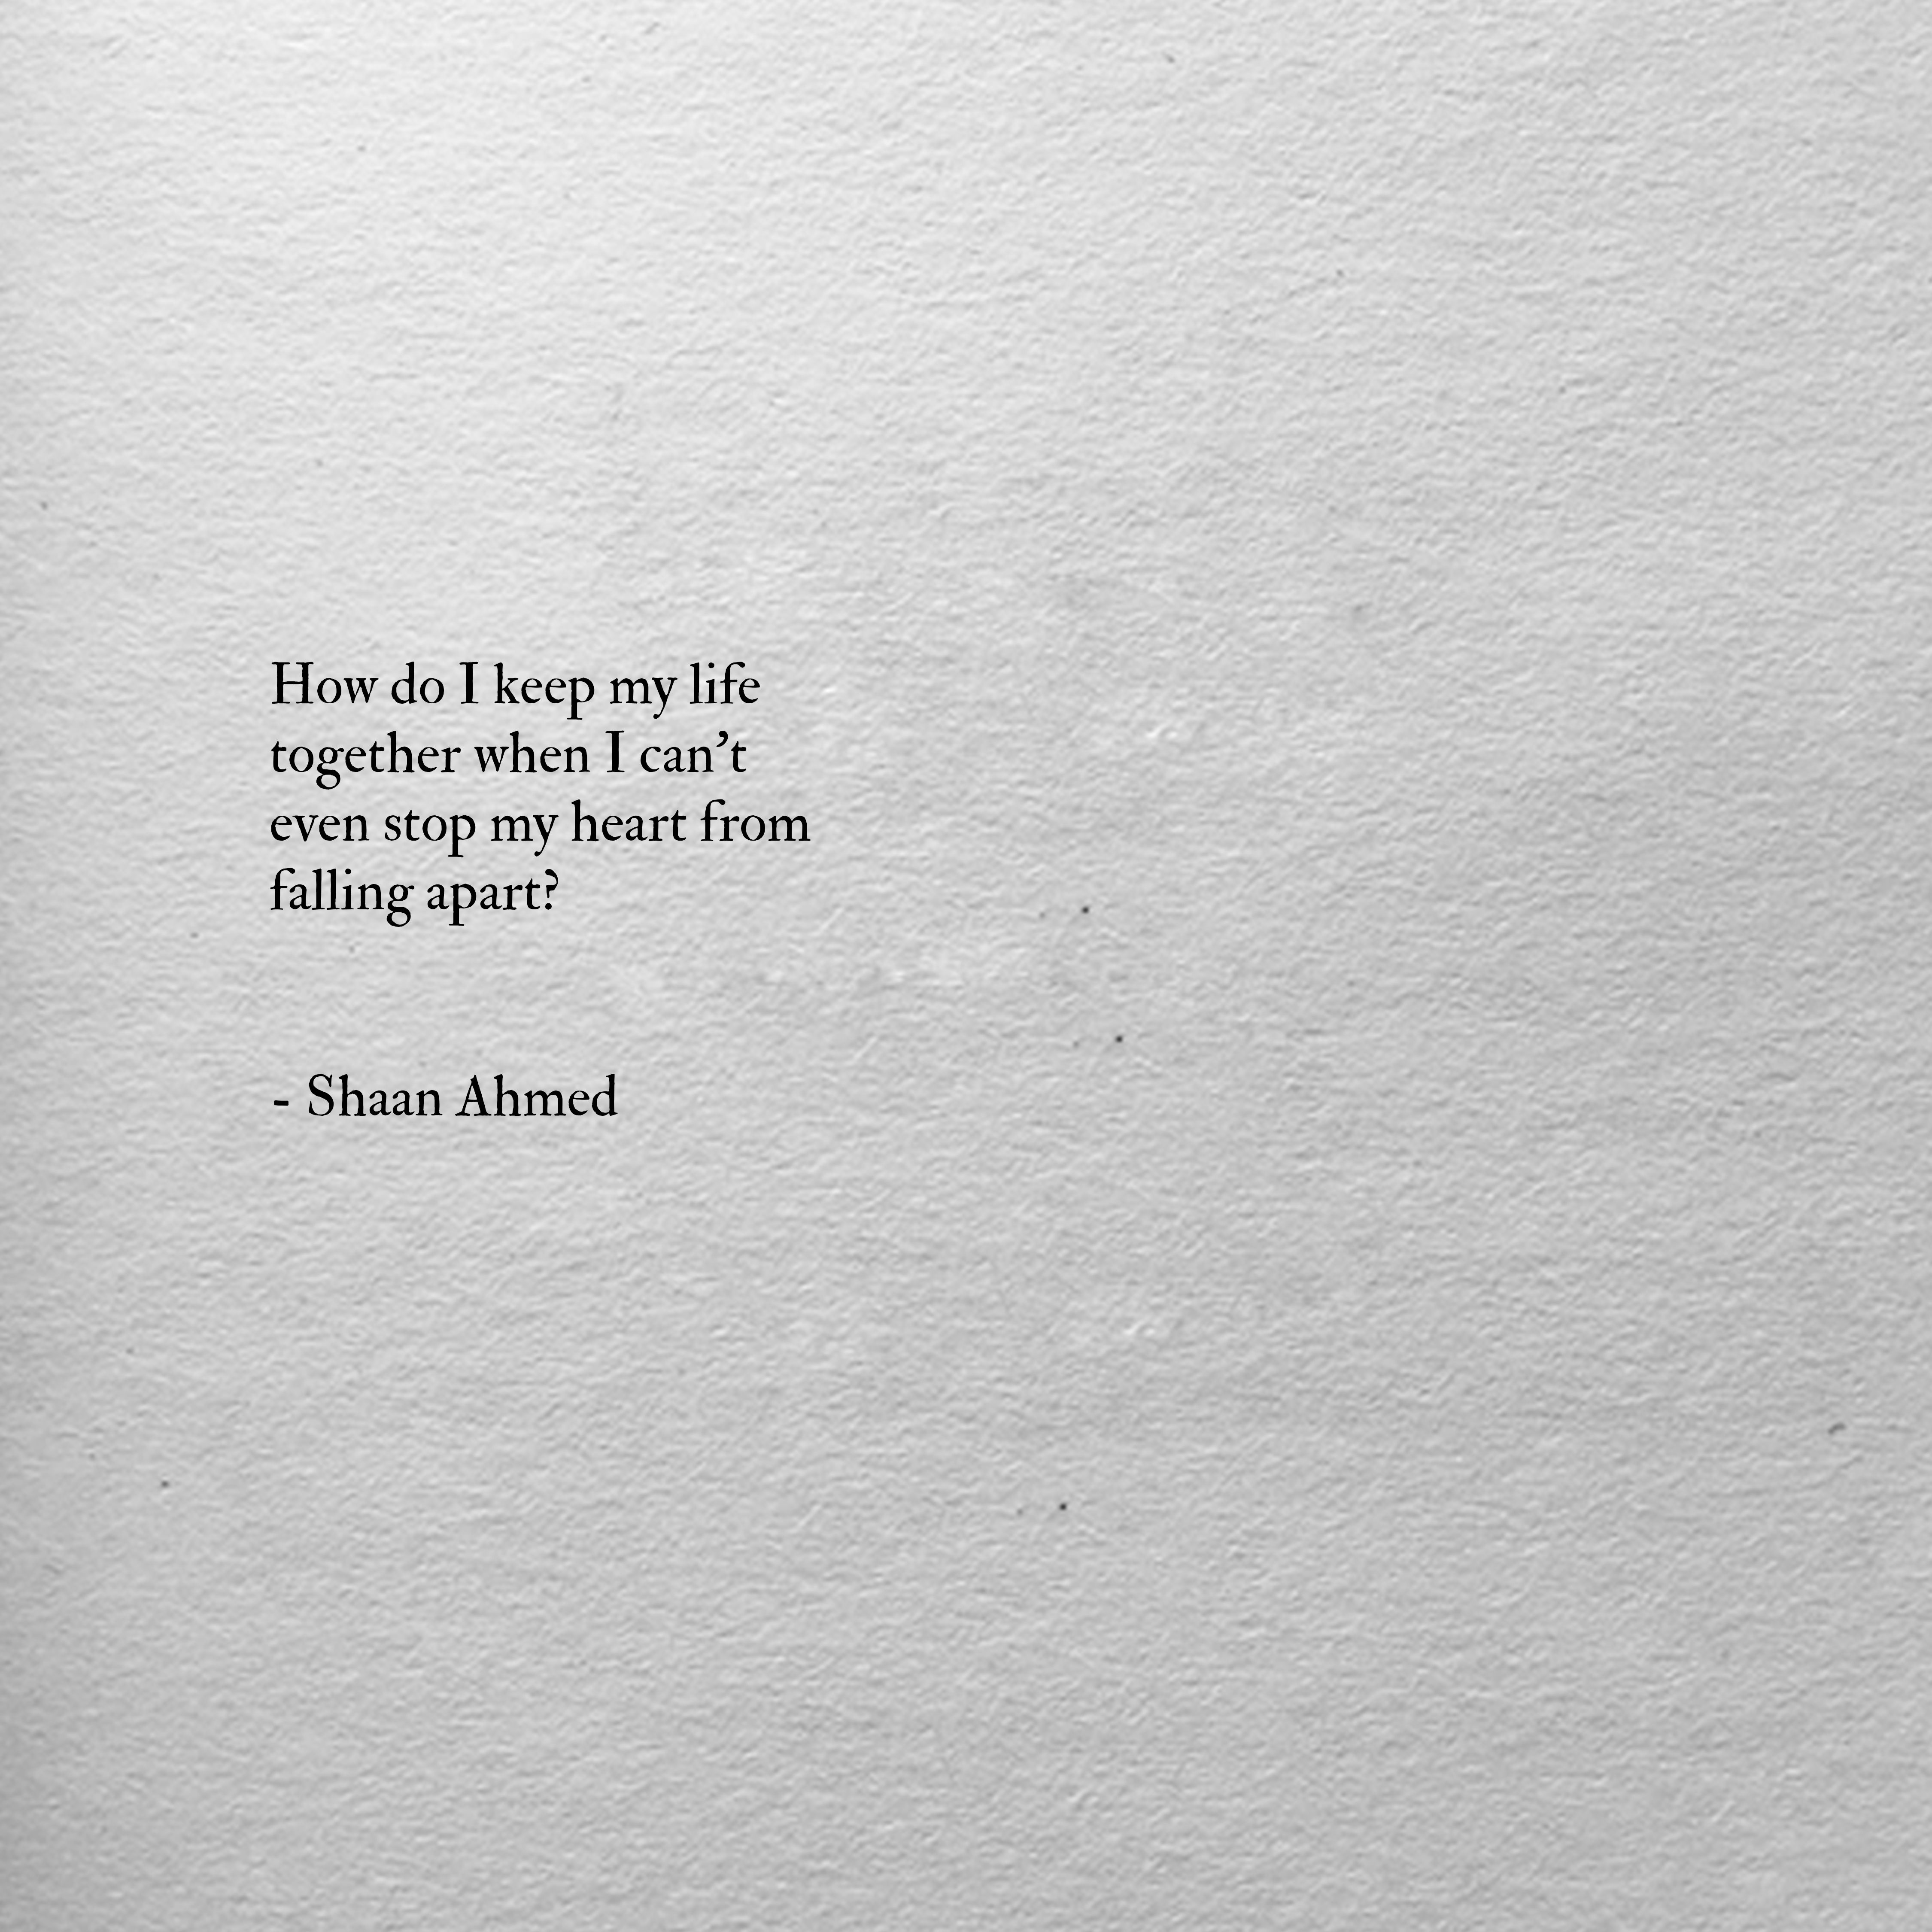 Pin on Shaan Ahmed Poetry and Quotes